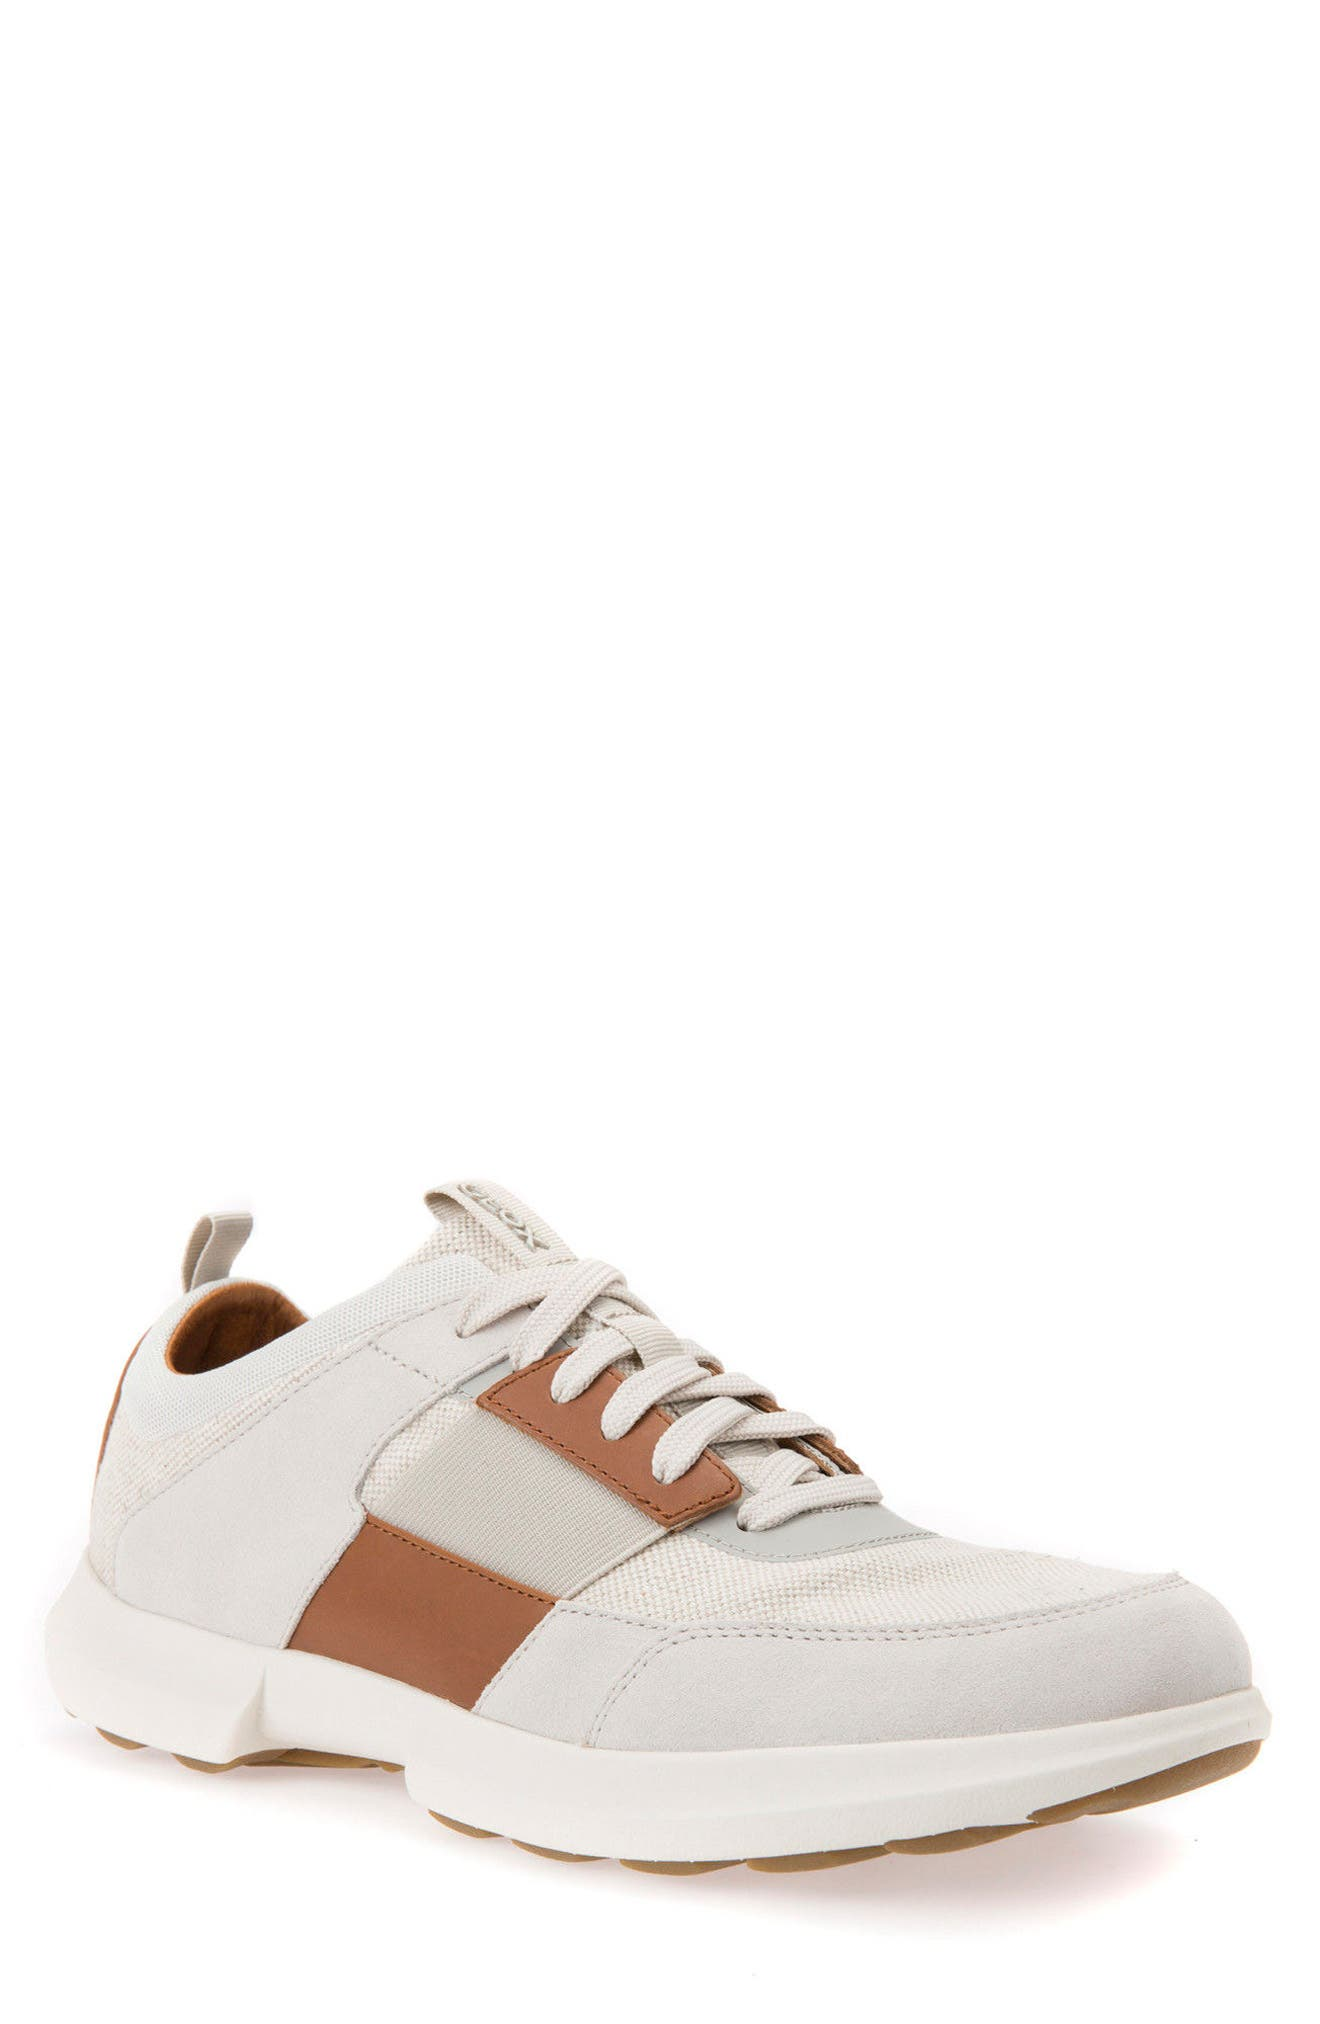 Traccia 7 Sneaker,                         Main,                         color, PAPYRUS